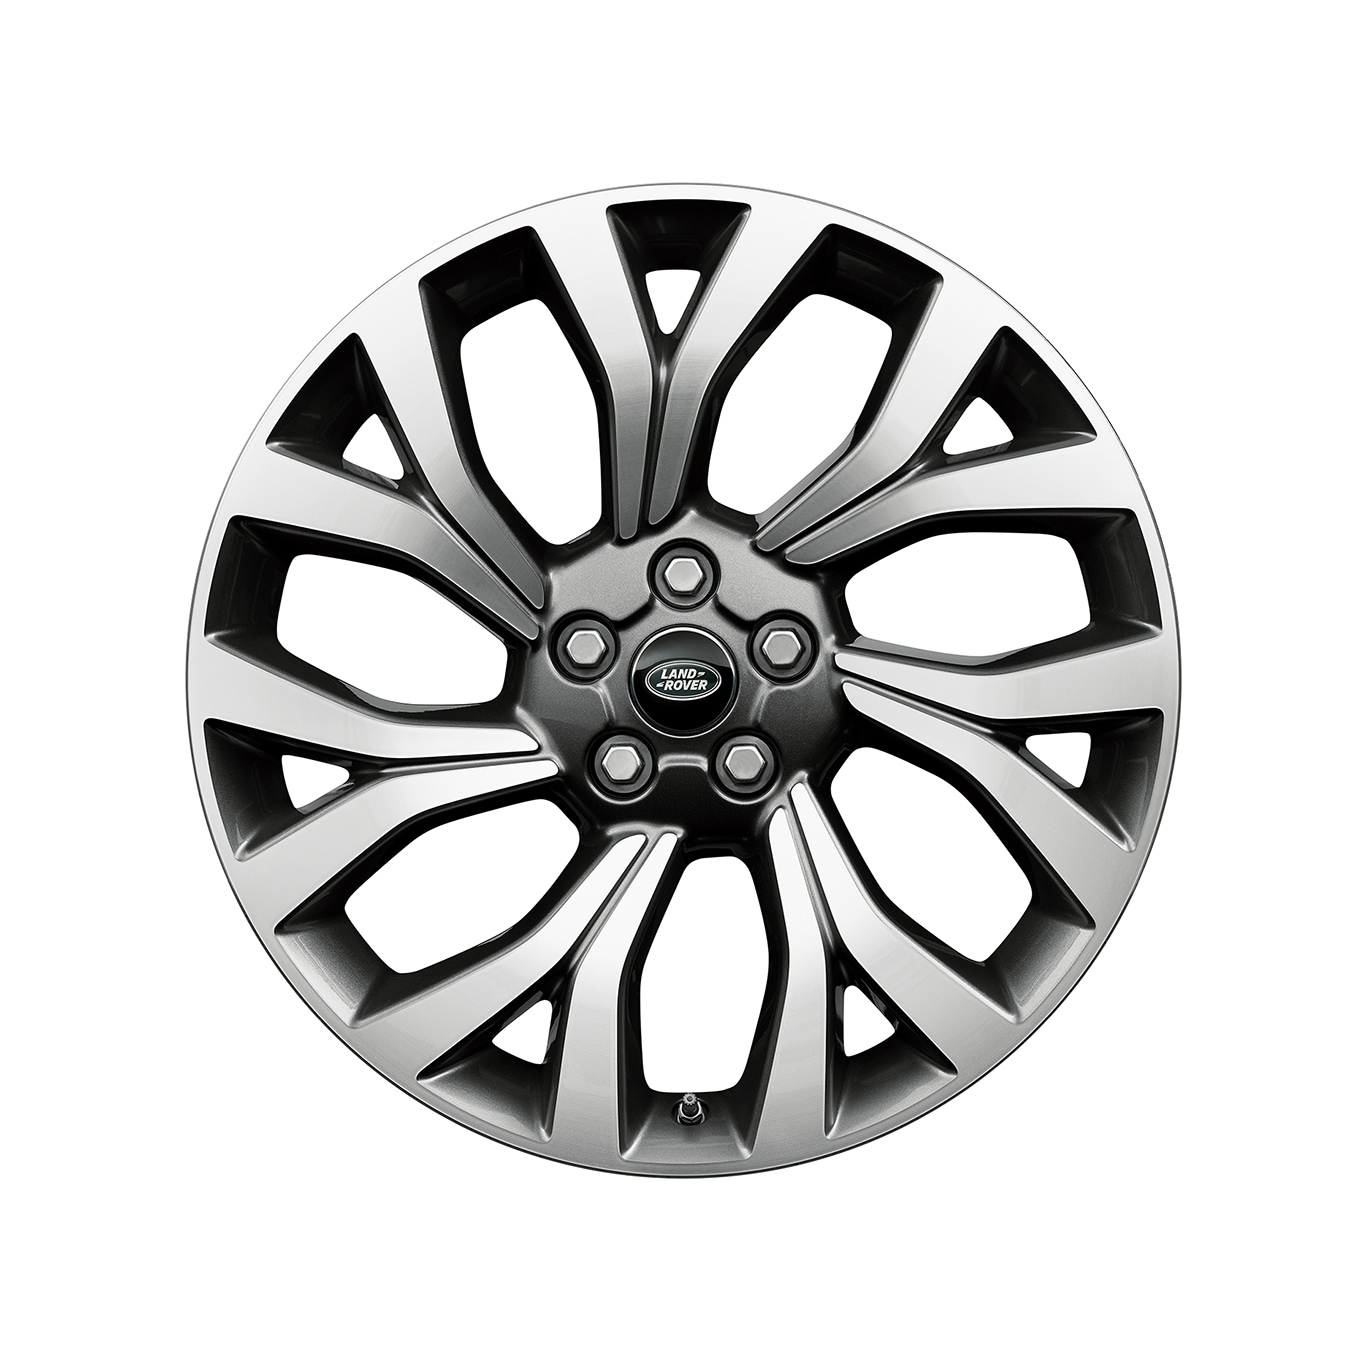 "Lichtmetalen velg - 21"" 7 dubbele spaken, 'Styling 7001', in Light silver Diamond Turned finish"